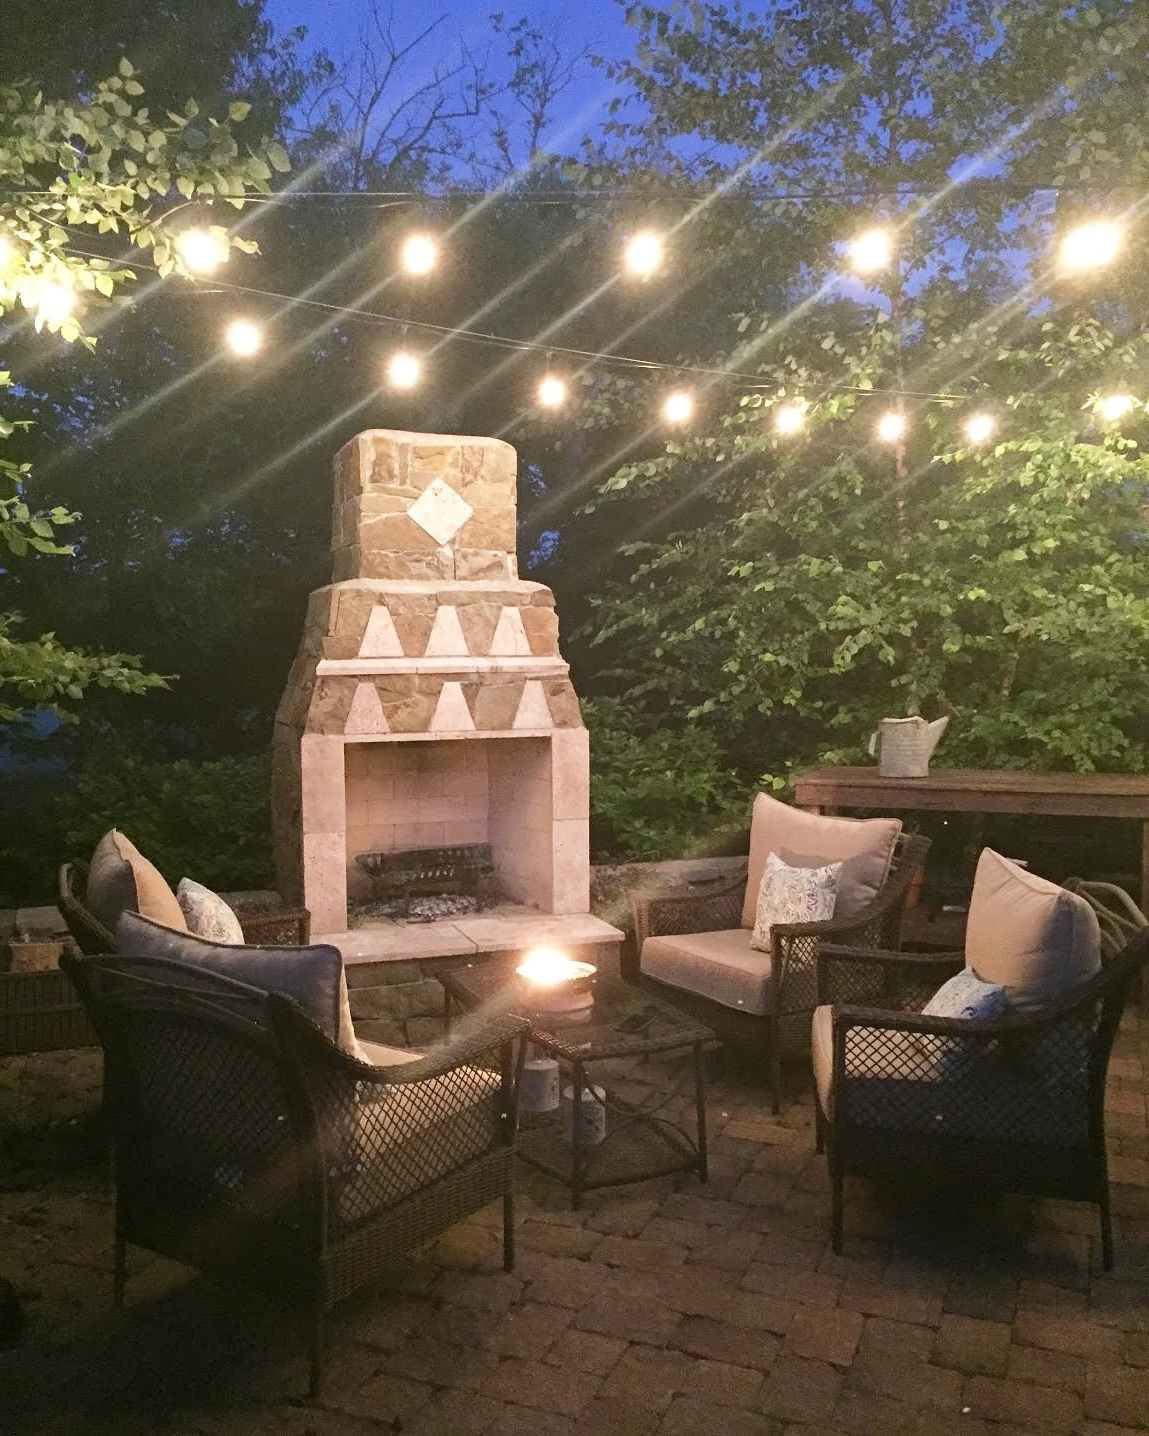 To Hang Outdoor String Lights From Thrifty Decor Chick With Regard To Most Recent Outdoor Patio Hanging String Lights (View 17 of 20)